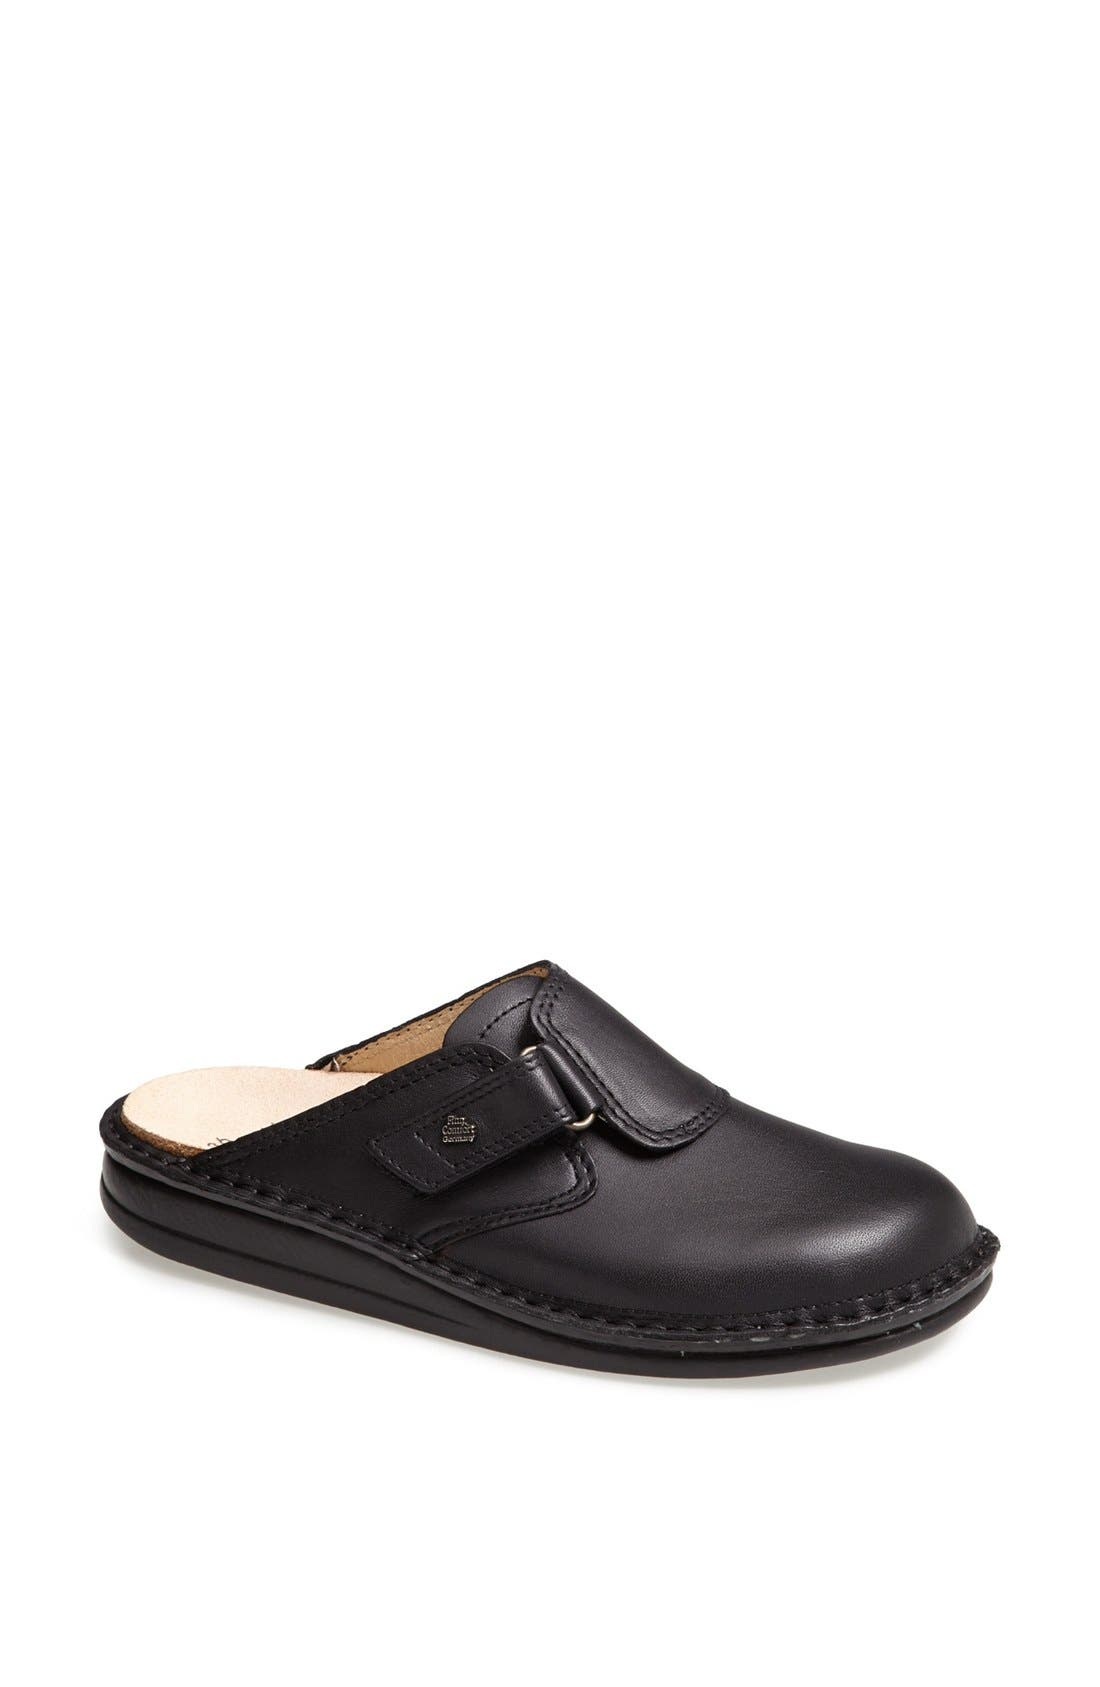 Finn Comfort 'Venice' Leather Clog